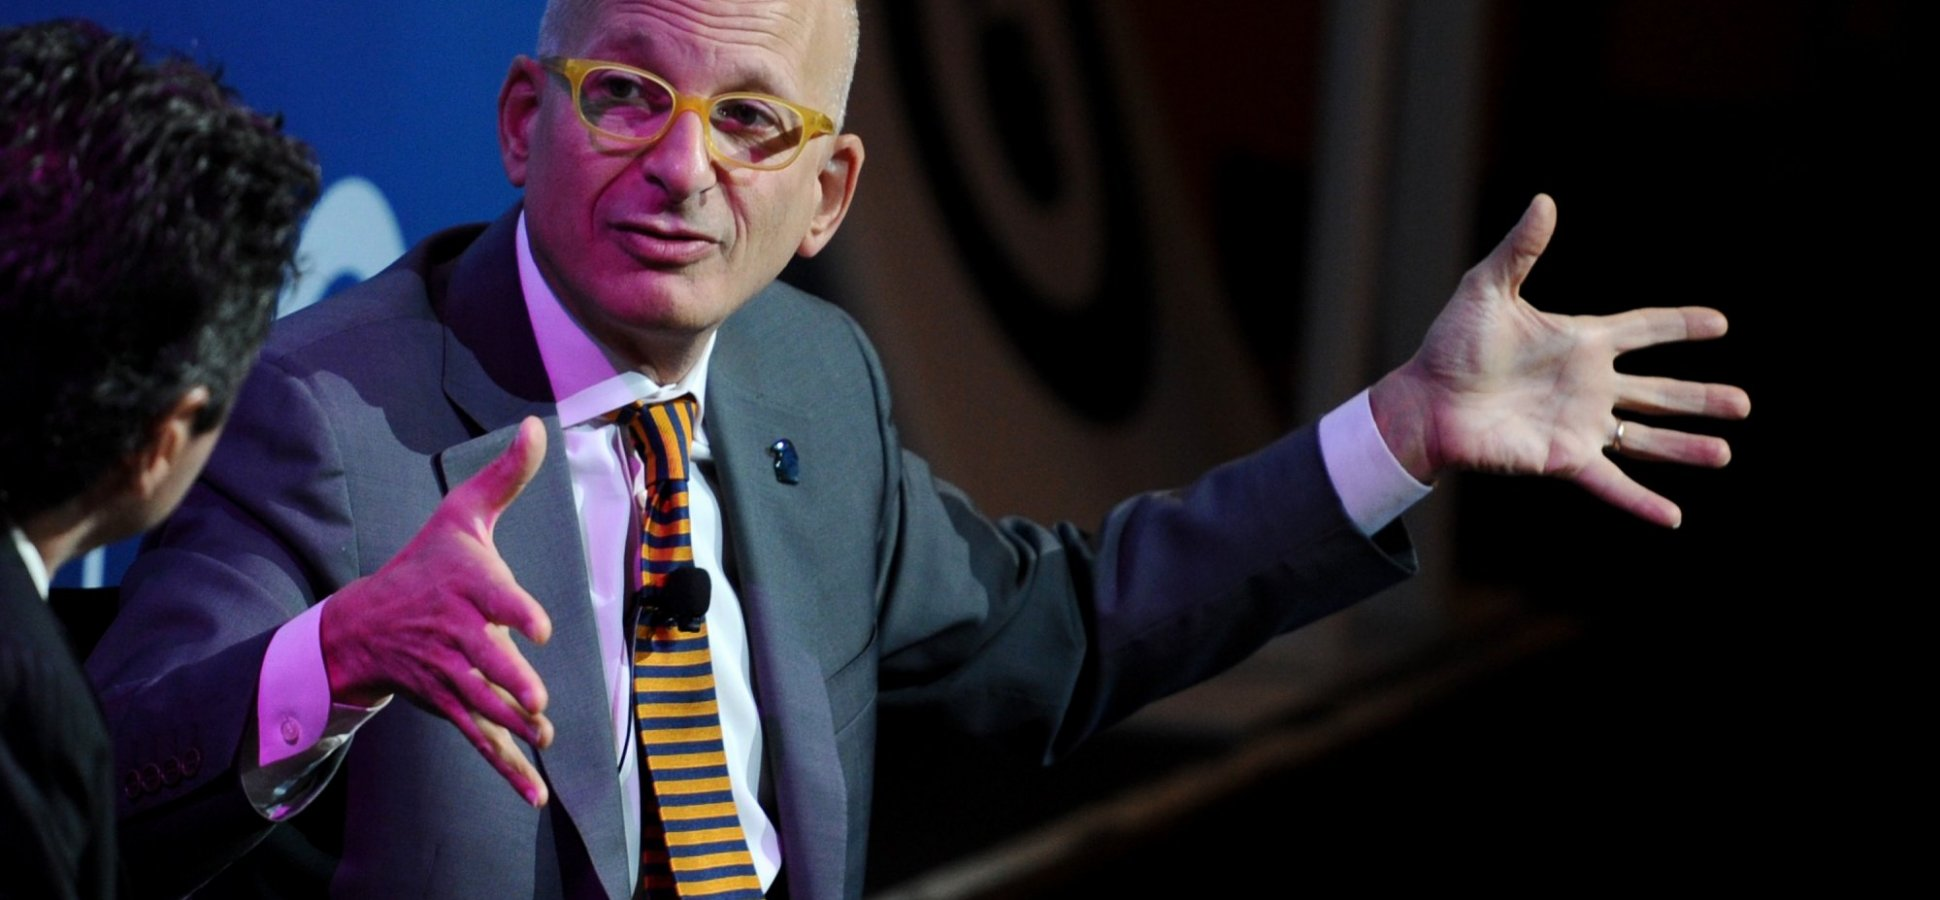 The Future of Work With Seth Godin: HR Leaders and Managers Will Not Like This